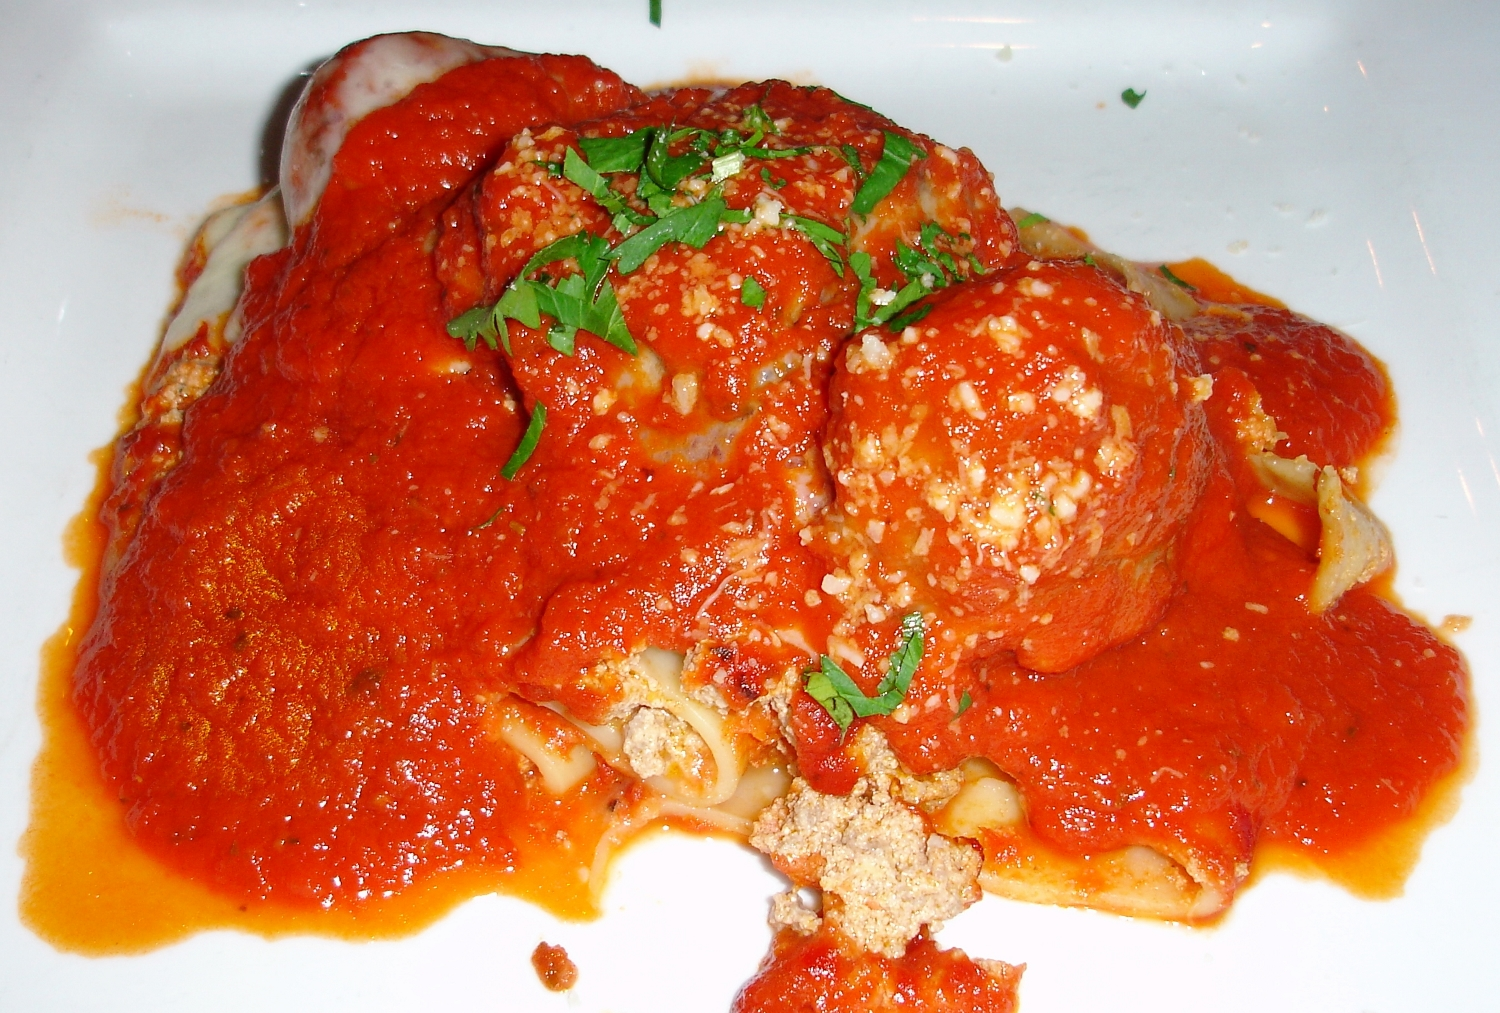 Lasagna is apparently made on the spot, garnished with a pair of excellent meatballs and  a well-spiced patty of  well-browned Italian sausage that tasted homemade.